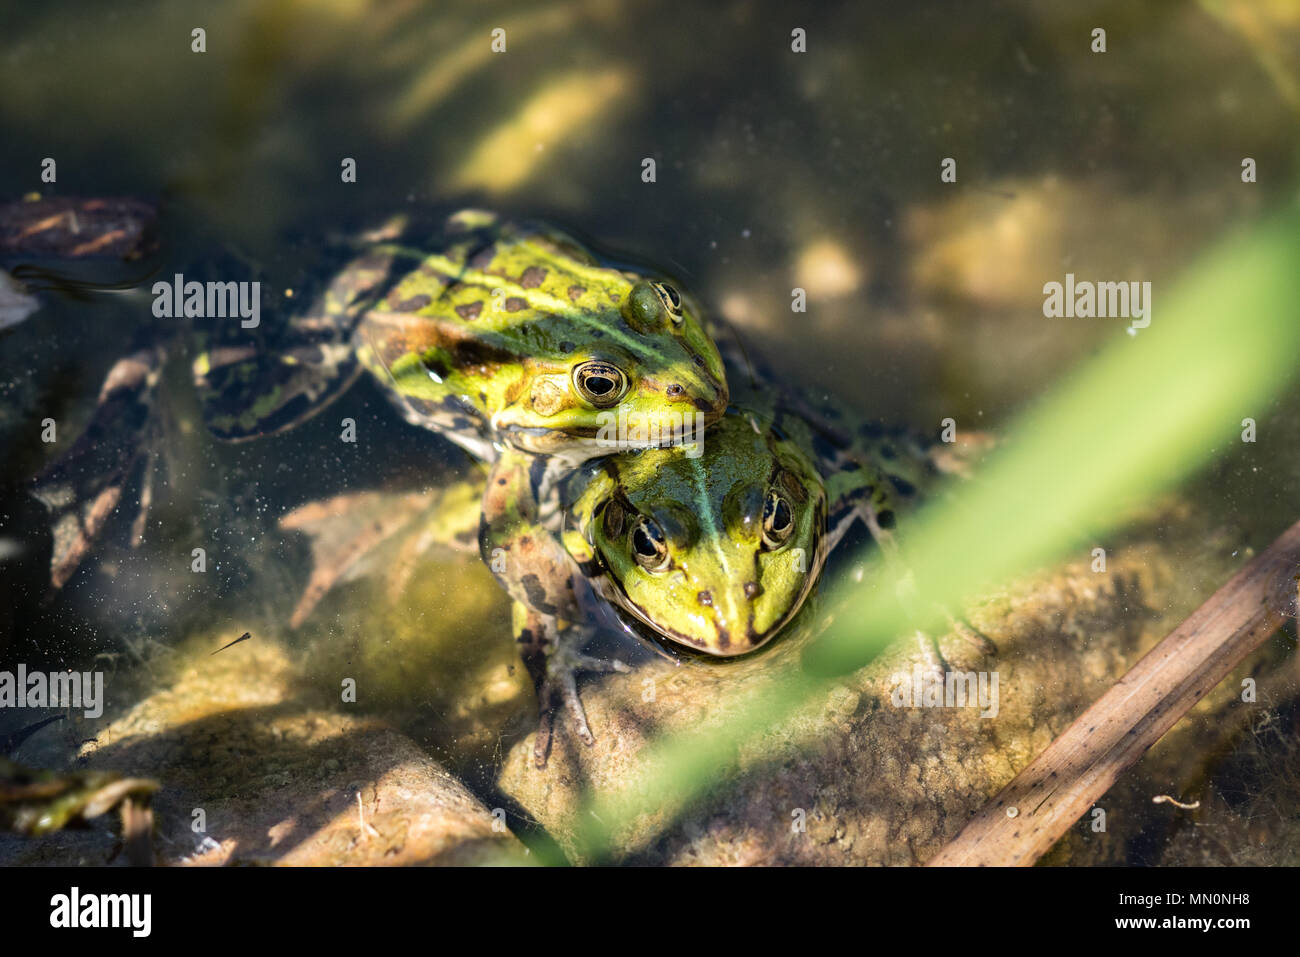 Two frogs pairing - Stock Image